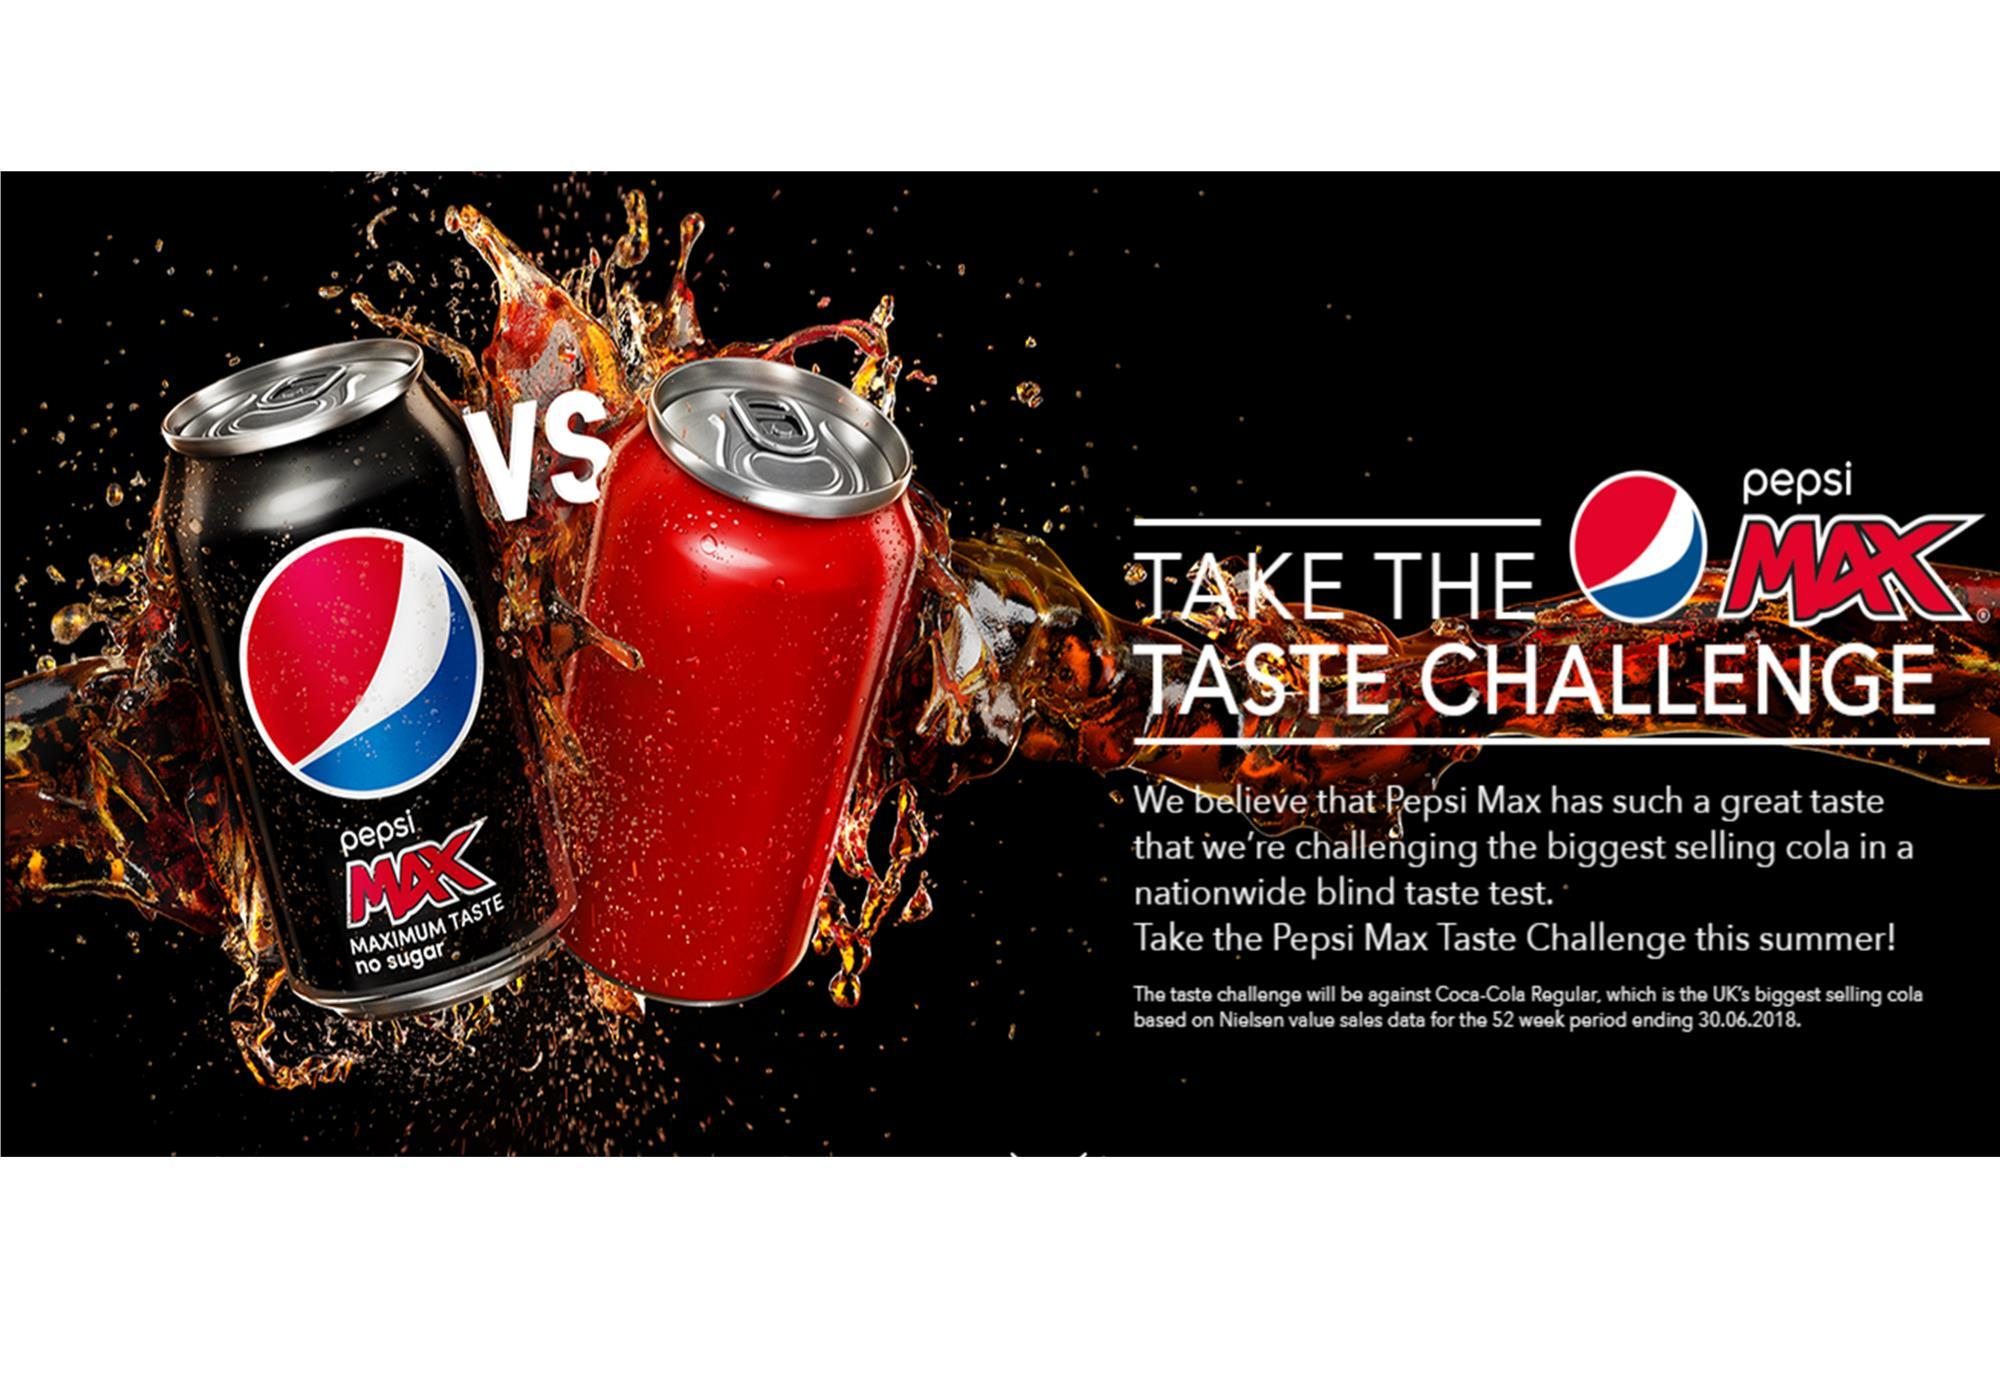 Pepsi Max takes on competition with blind taste test | Product News